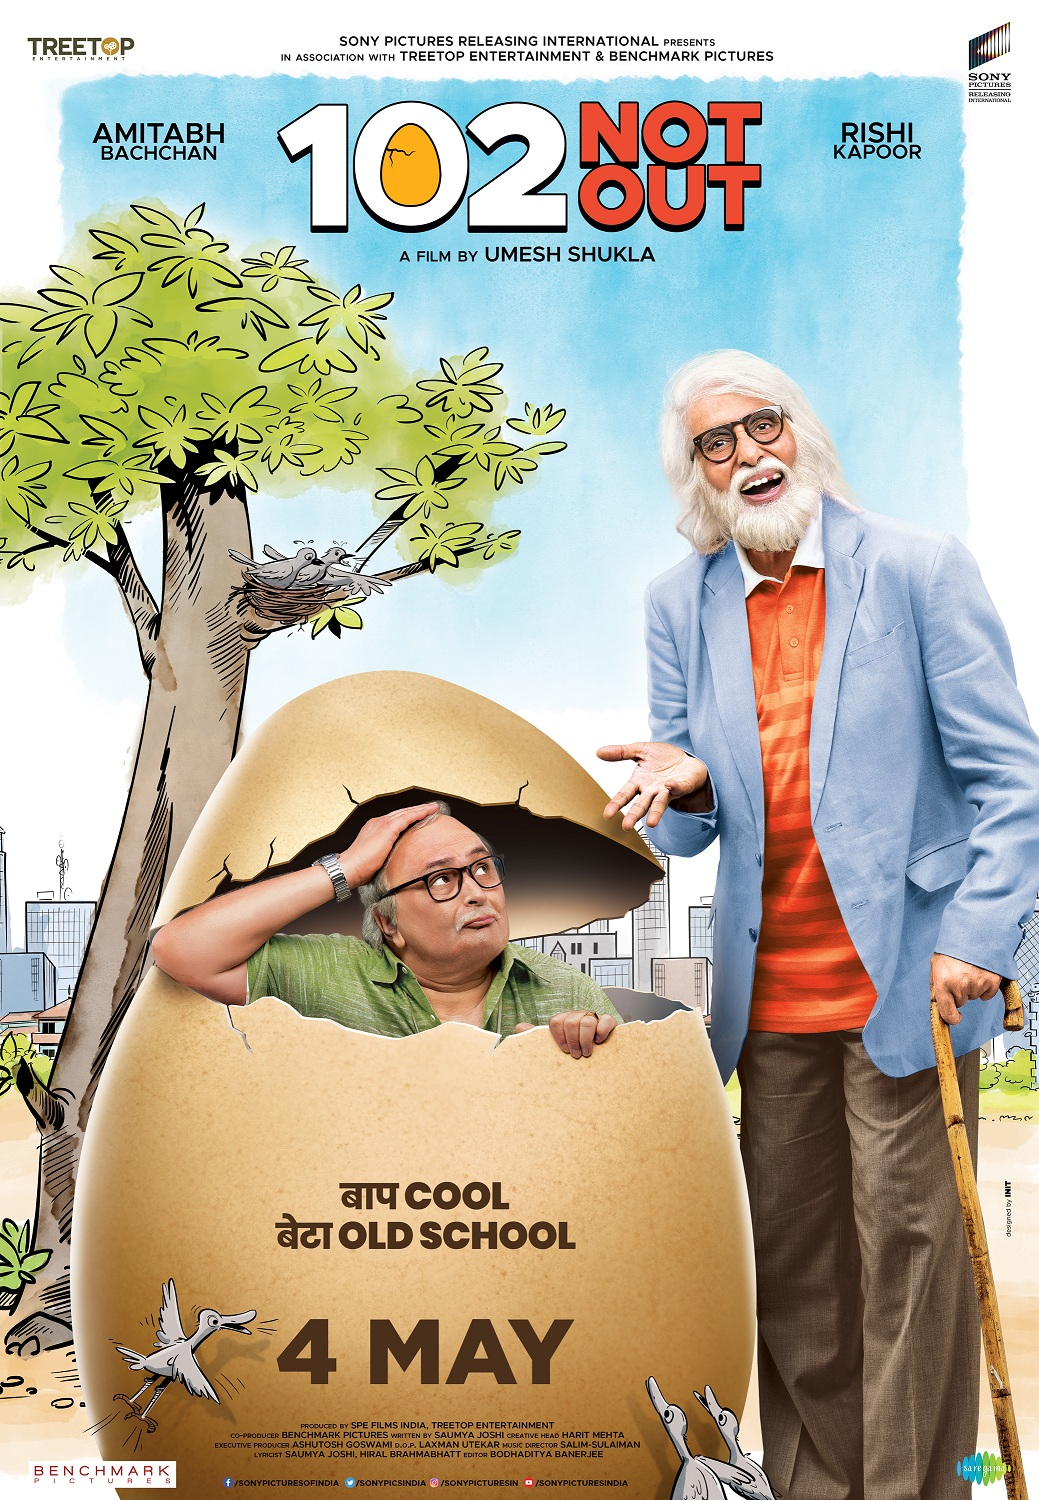 '102 NOT OUT' featuring Amitabh Bachchan and Rishi Kapoor in cinemas on 4th May 2018